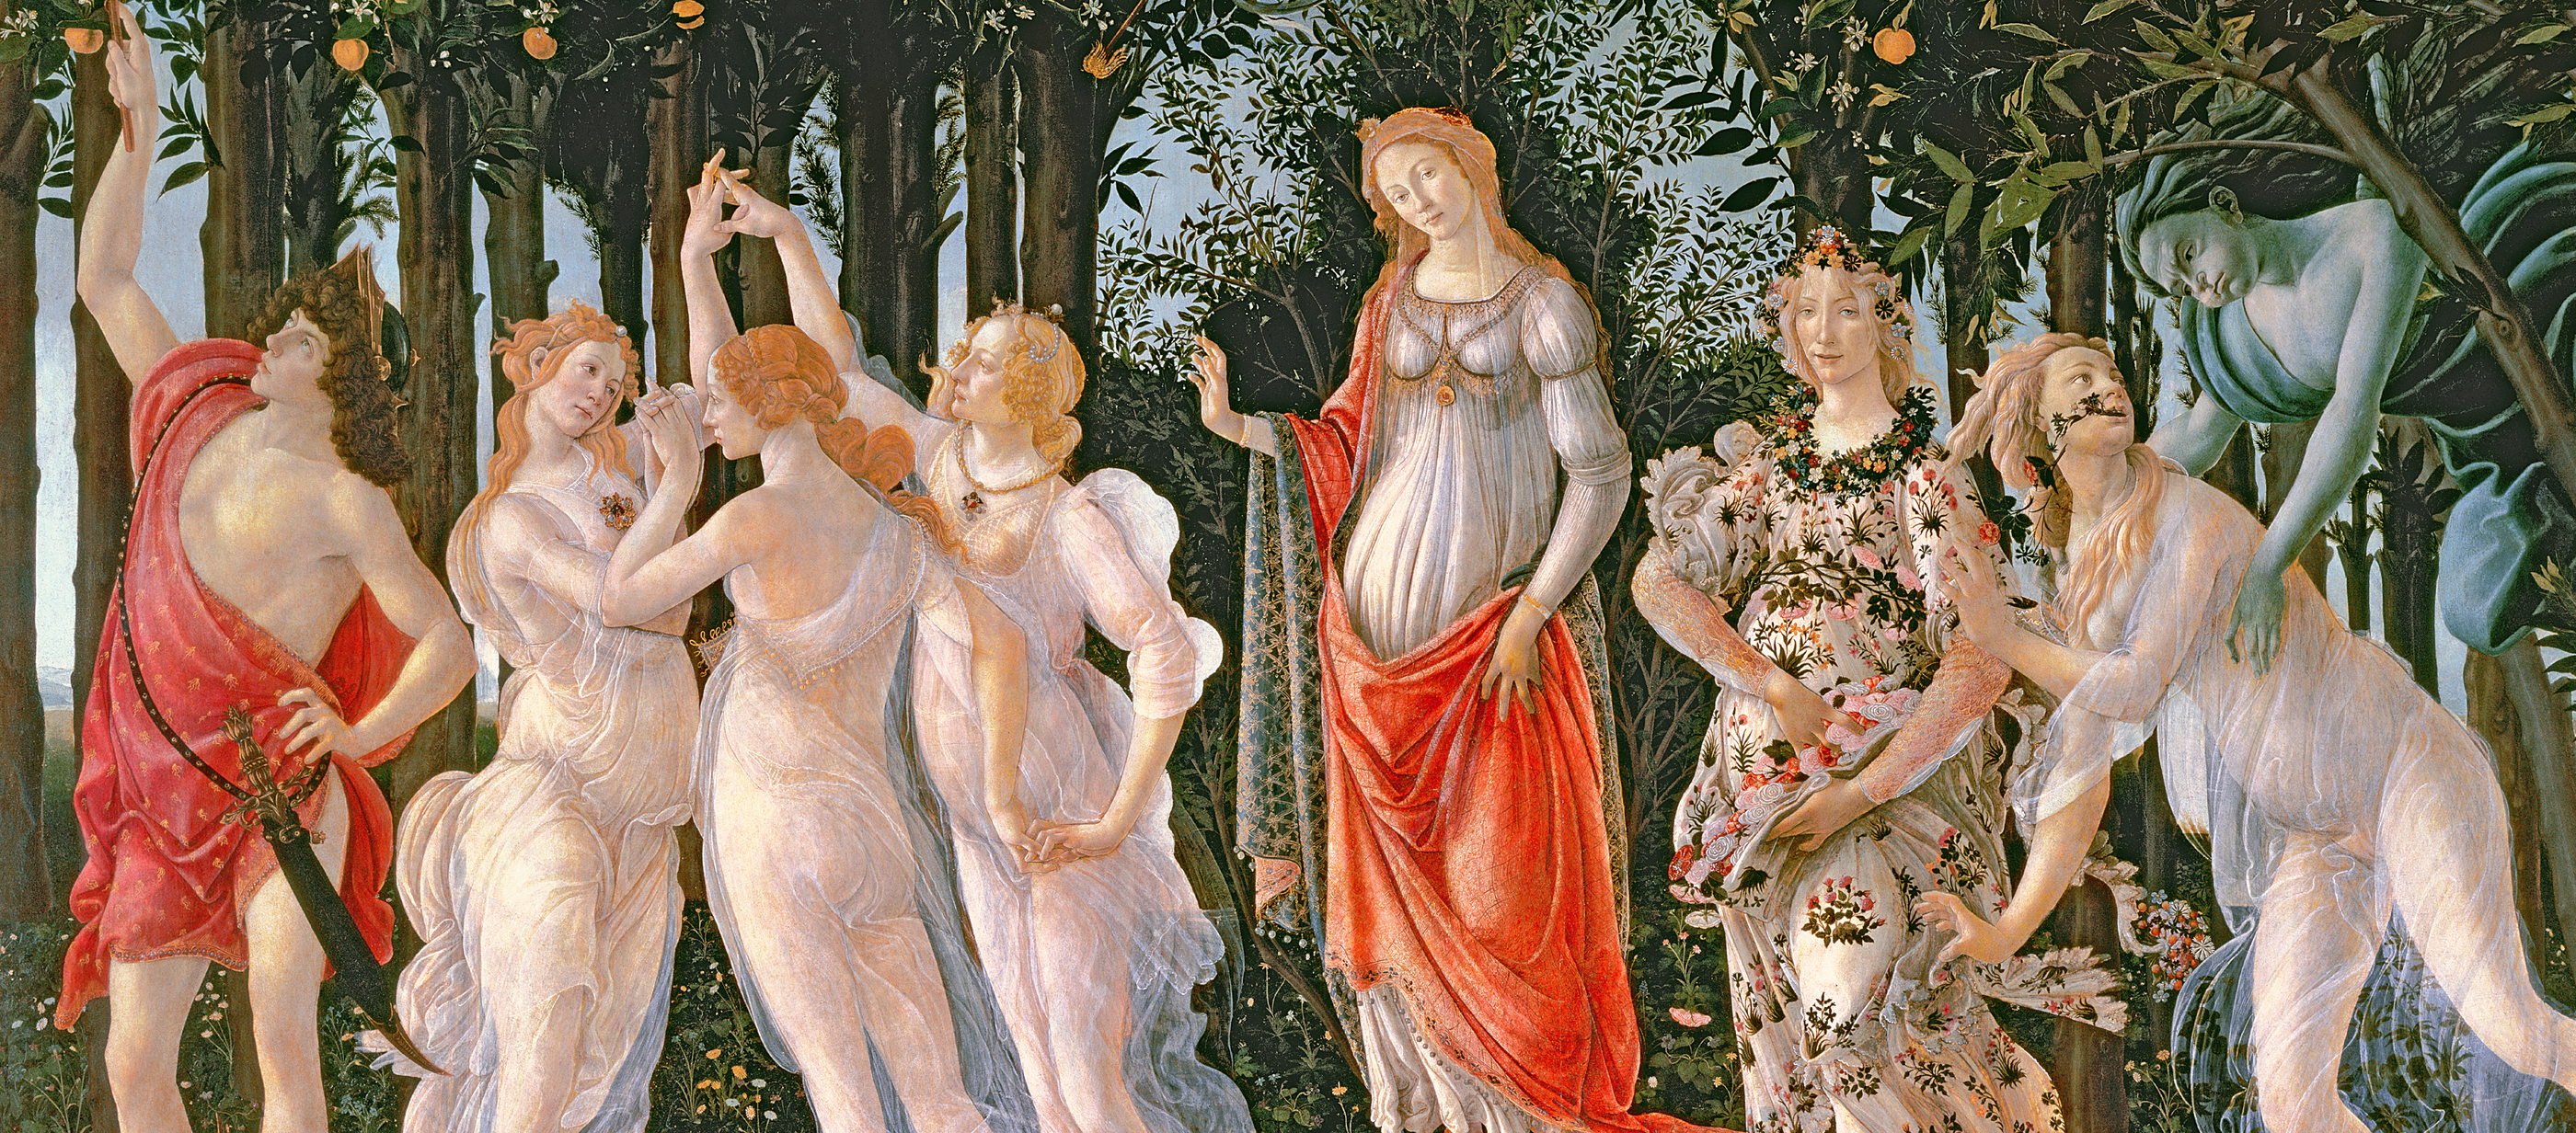 The Allegory of Spring, painting by Sandro Botticelli,